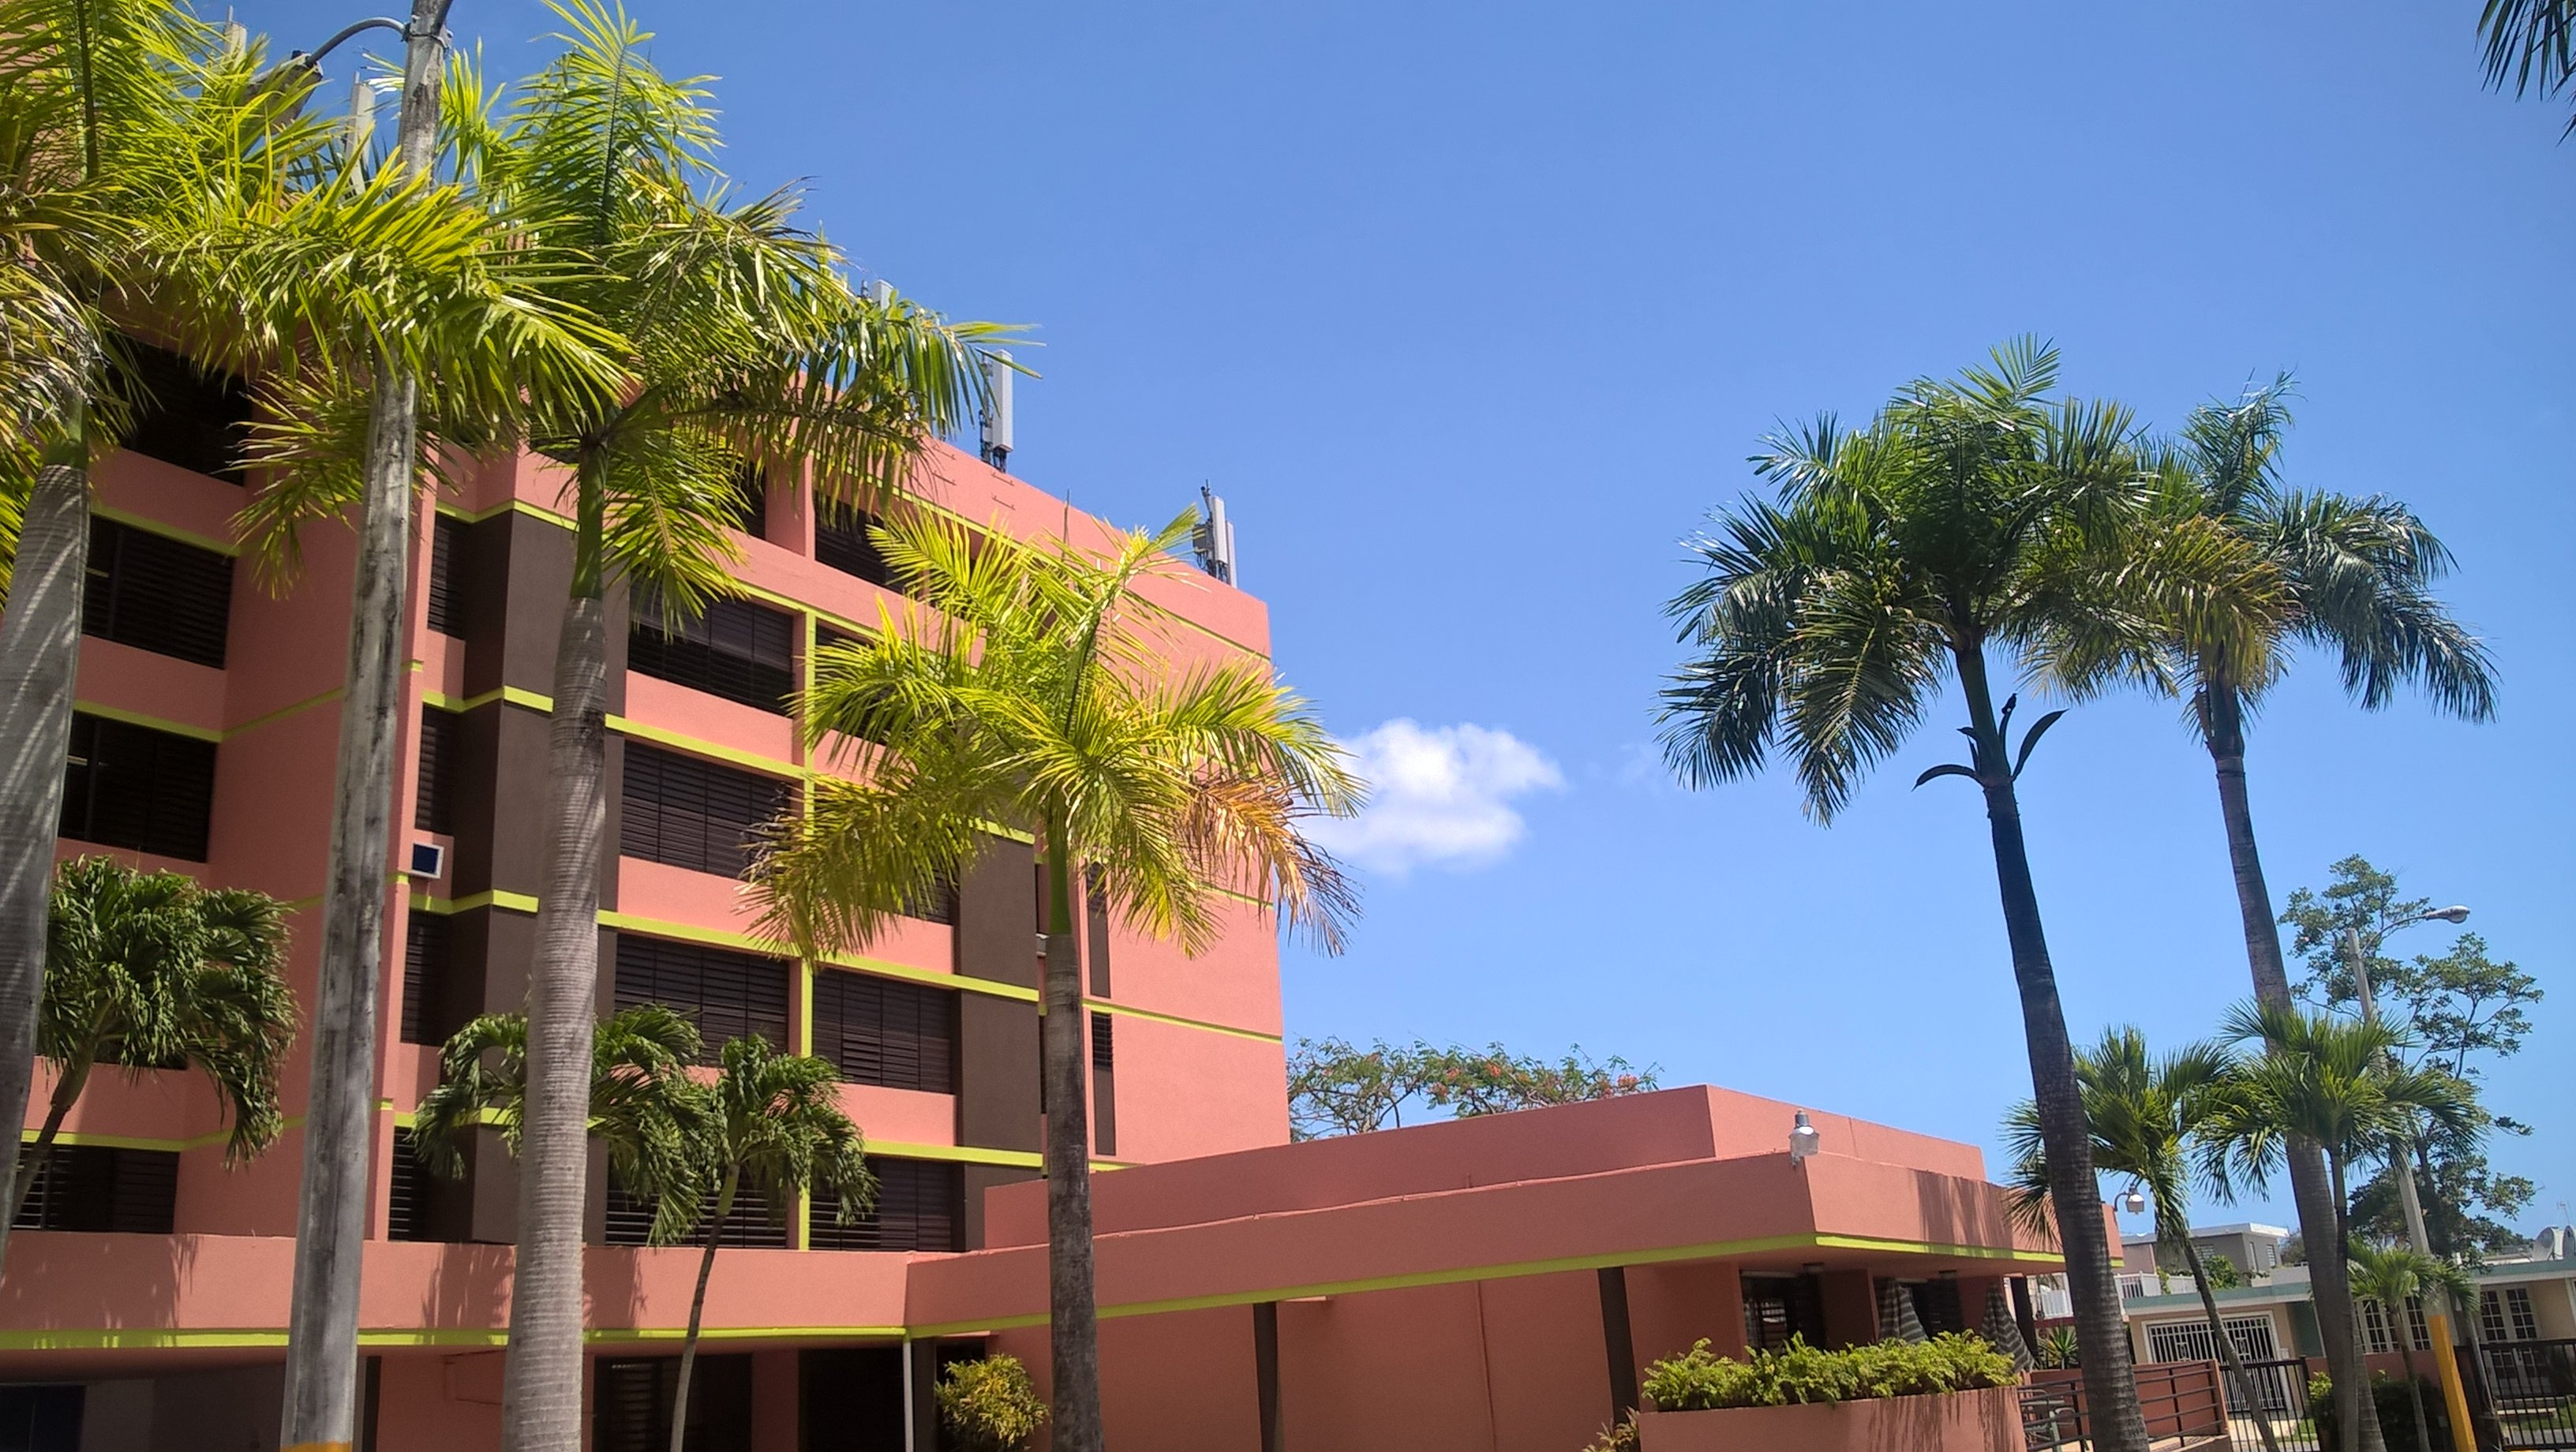 Villa Esperanza Apartments